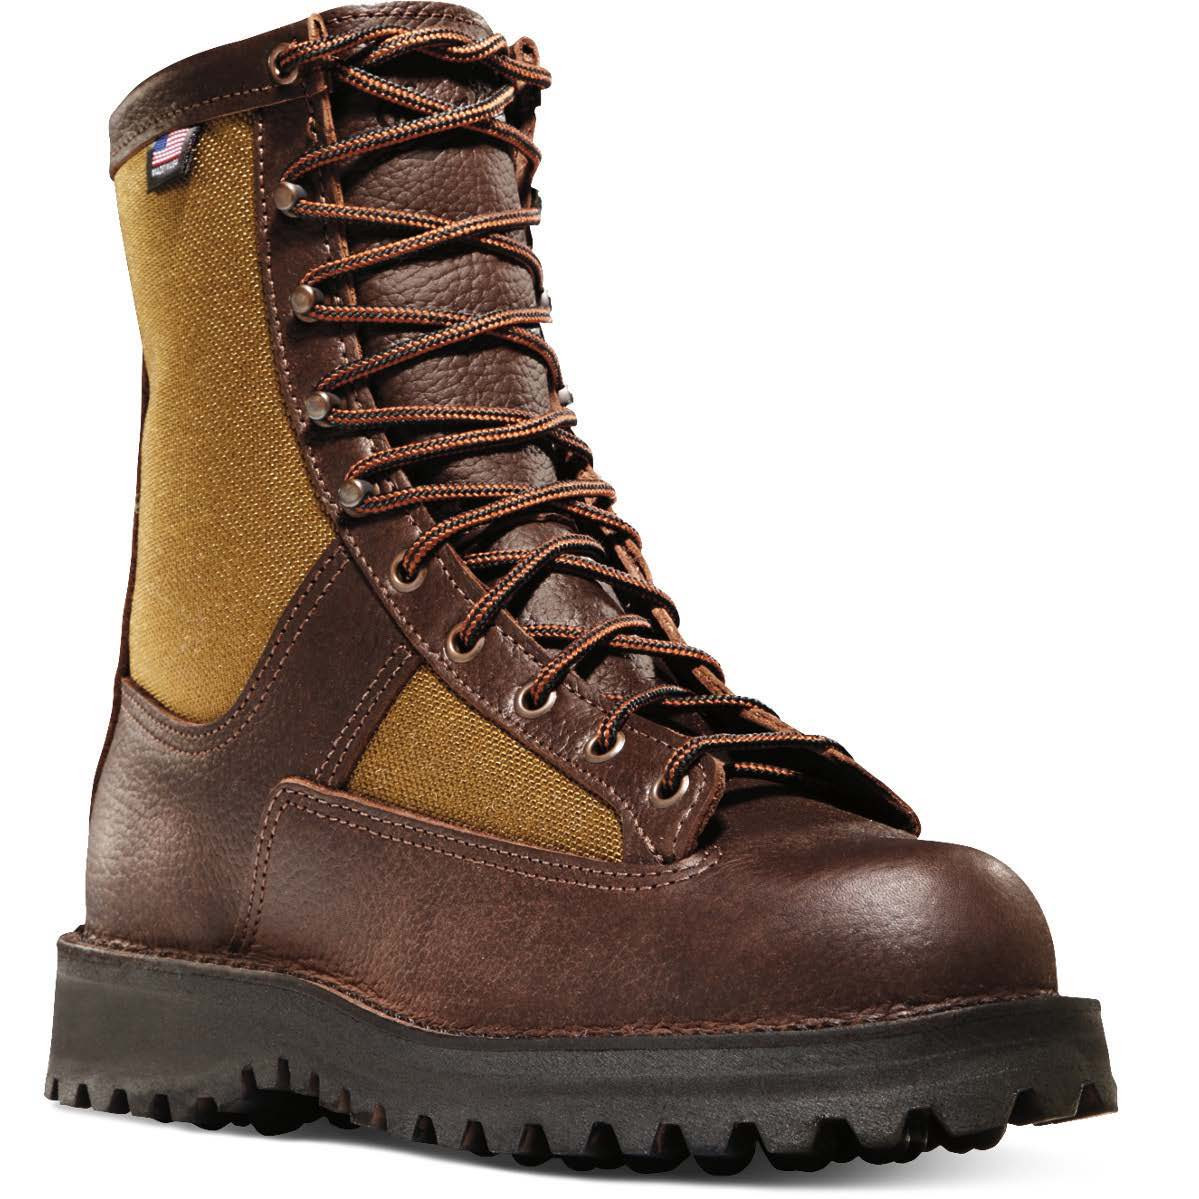 a83366ca51d Danner Men's Grouse 8